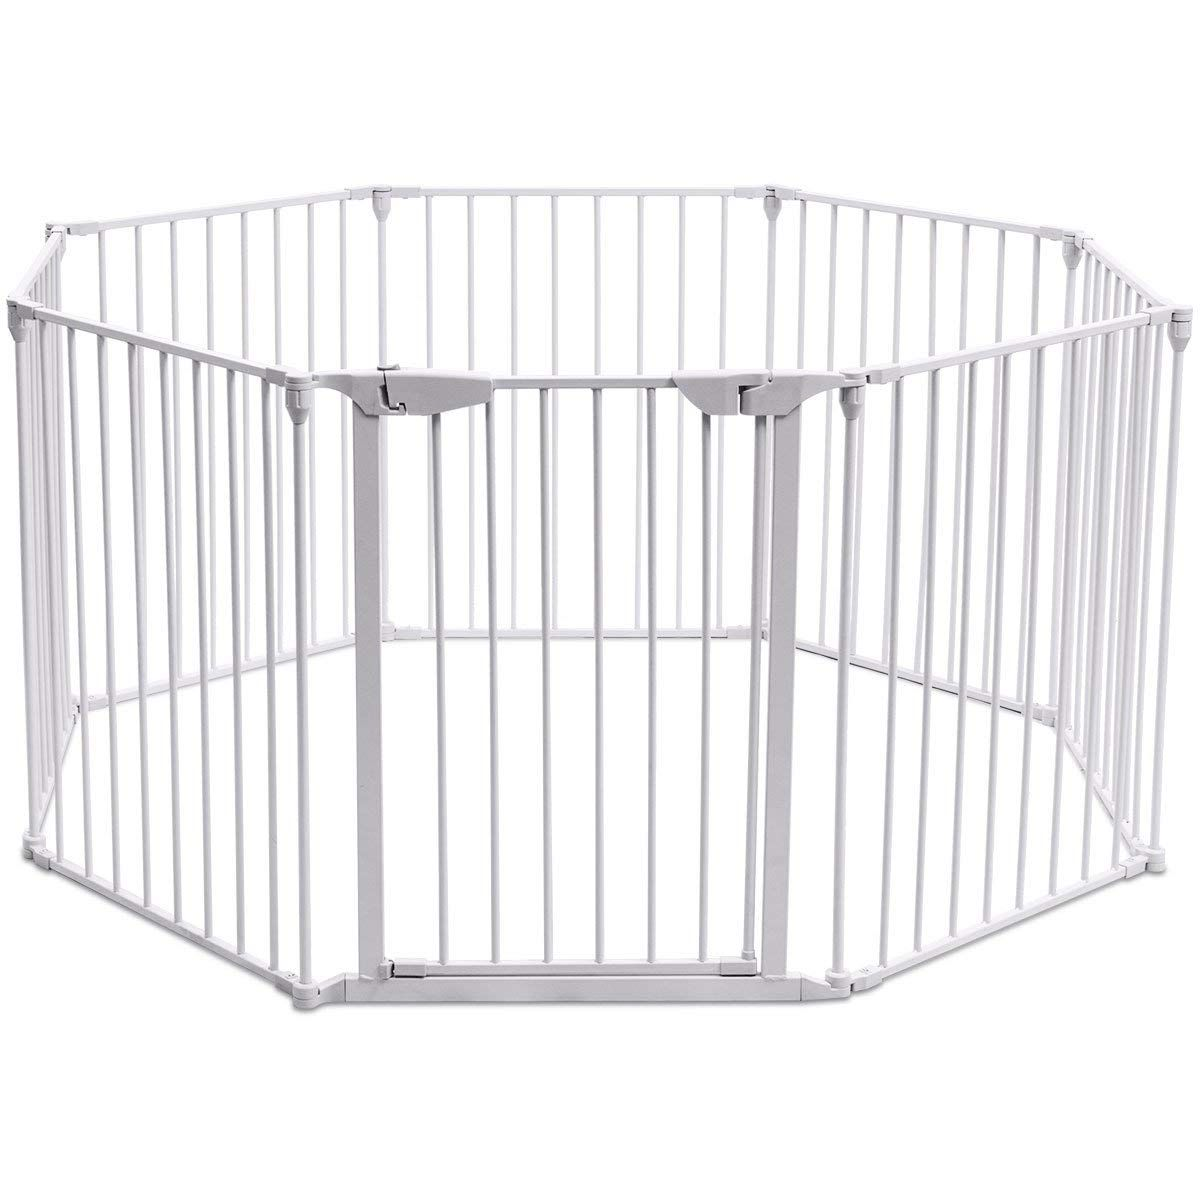 Costzon Baby Safety Gate 4 In 1 Fireplace Fence Wide Barrier